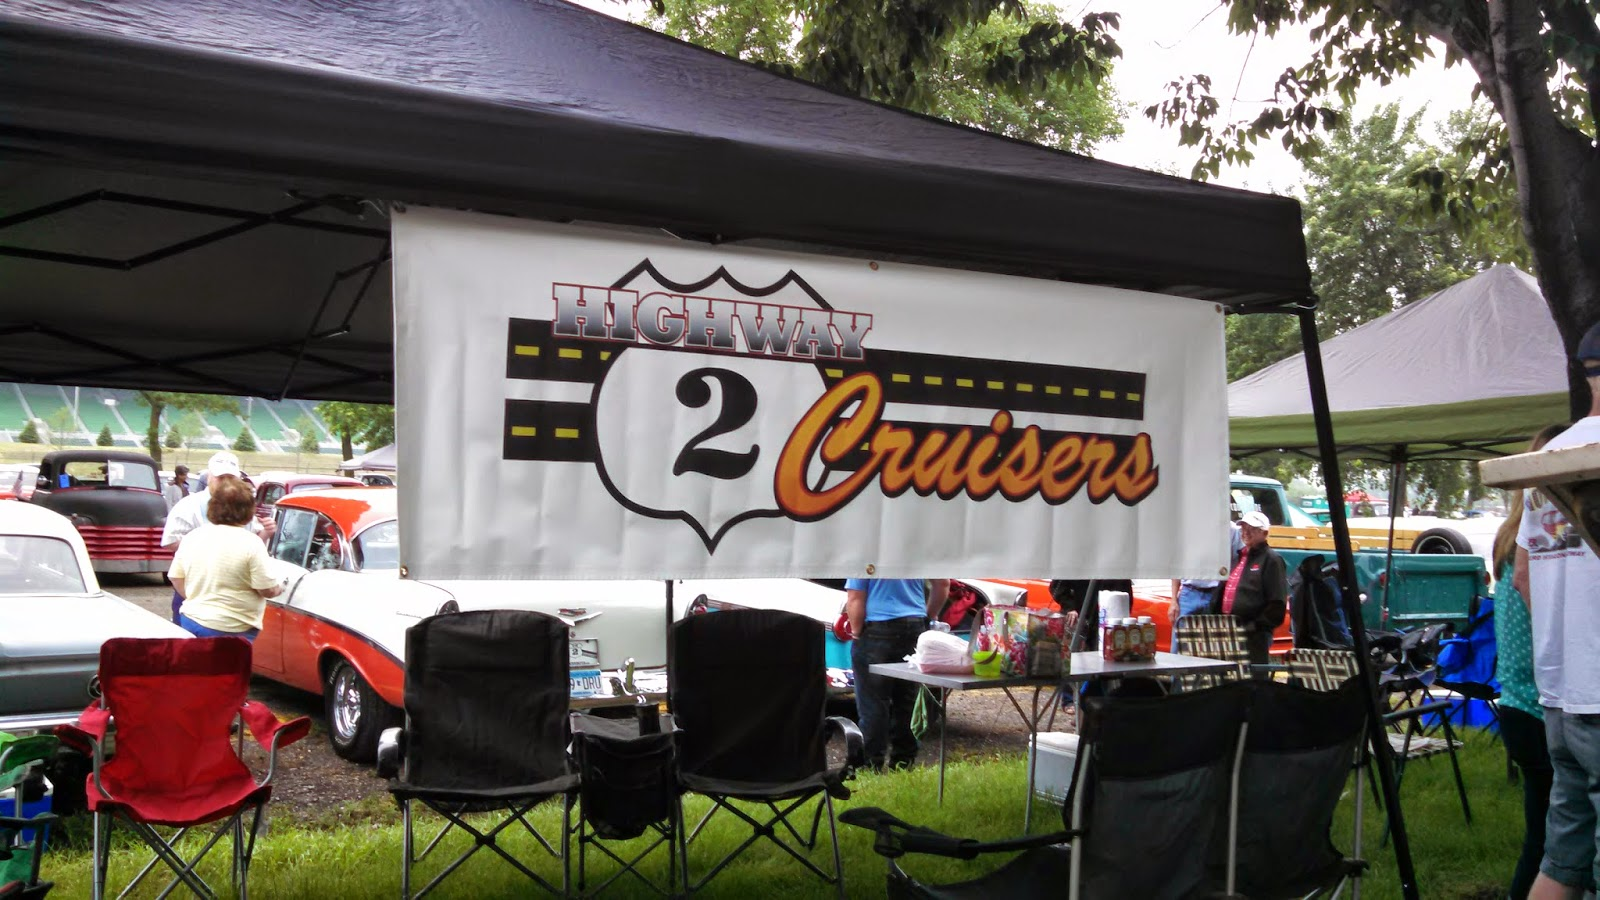 Hwy 2 Cruisers Banner at the Back to the 50s Car Show